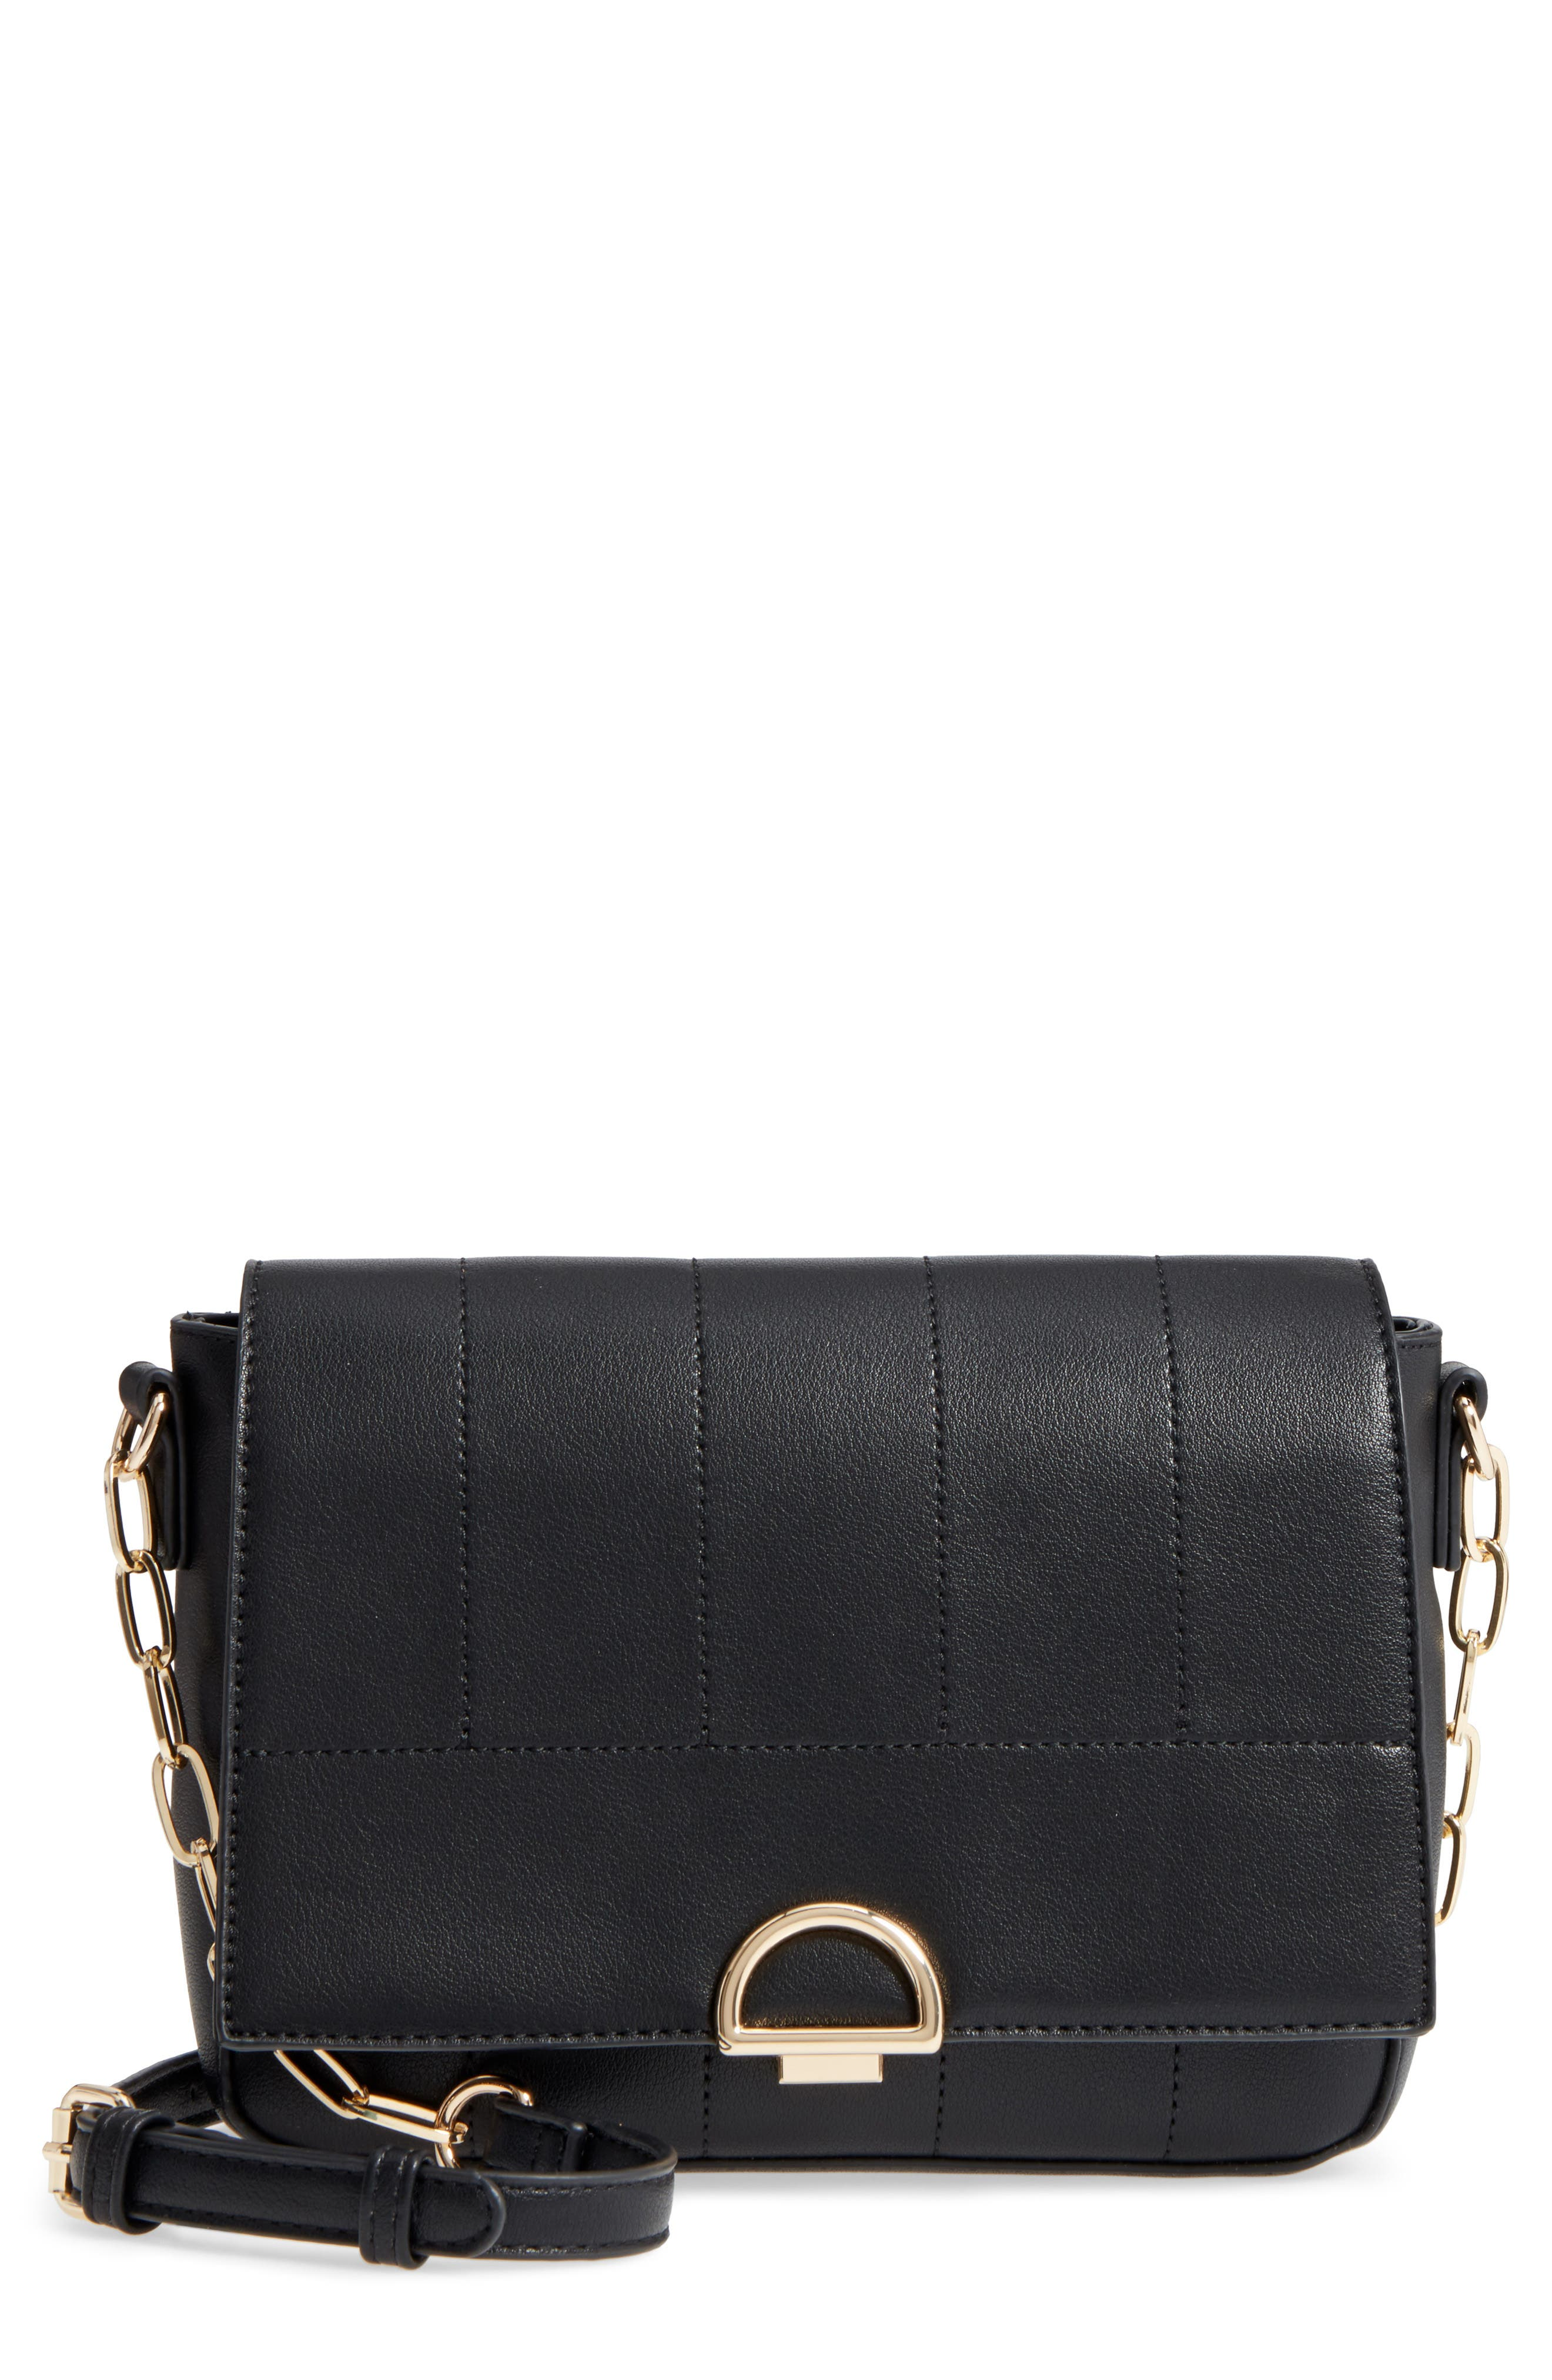 Main Image - Sole Society Colie Faux Leather Crossbody Bag